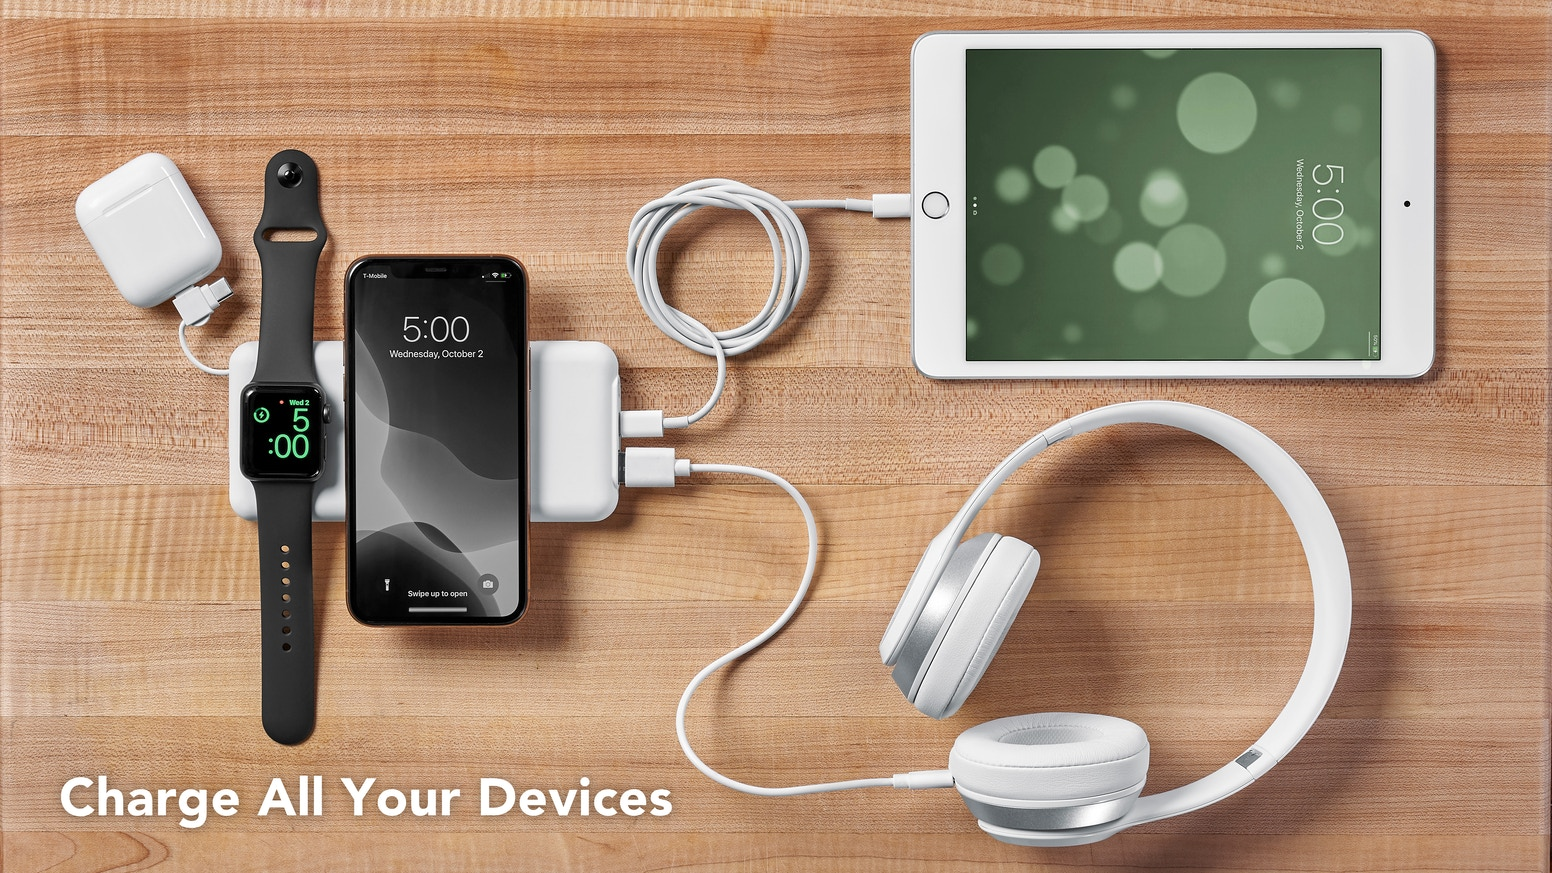 Just Simple Power Bank - All-in-One Portable Battery that Charges Up to 5 Devices & Up to 4X Faster